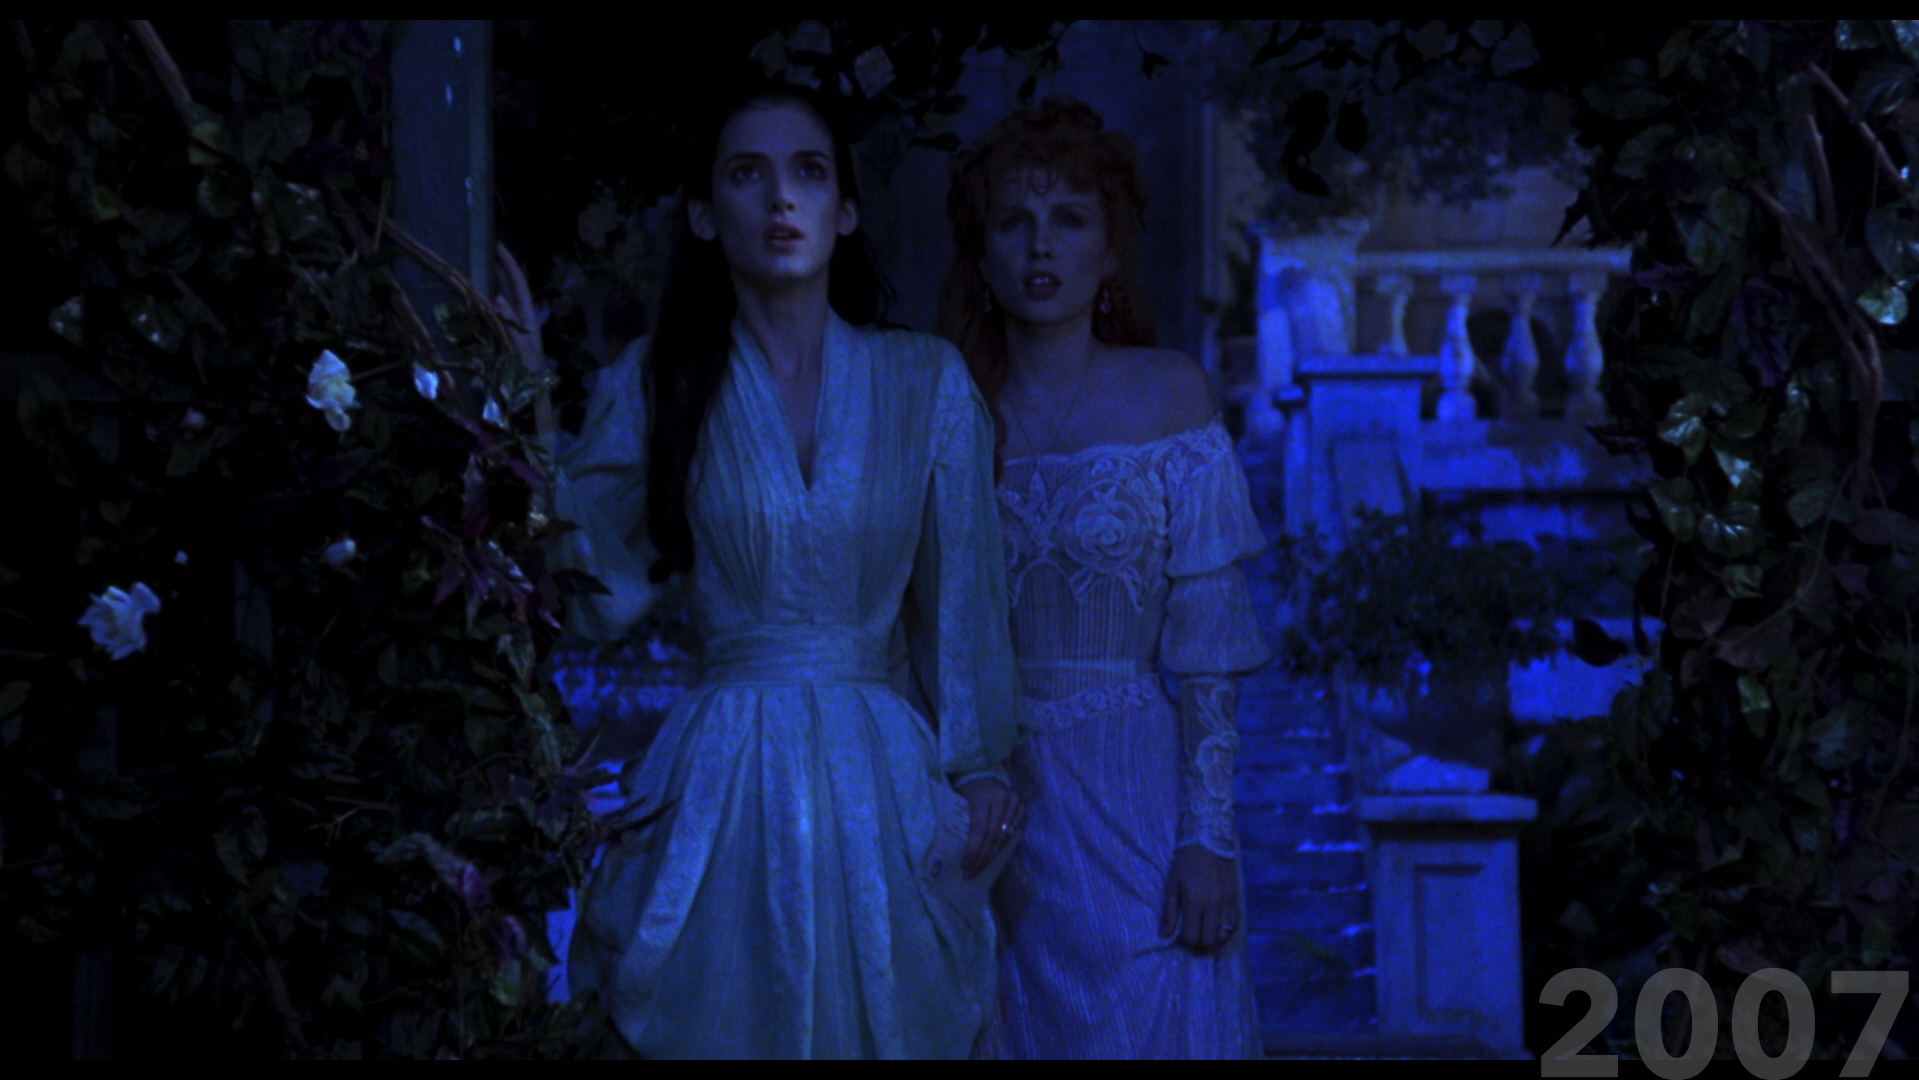 Bram Stoker's Dracula -- Mina and Lucy 2007